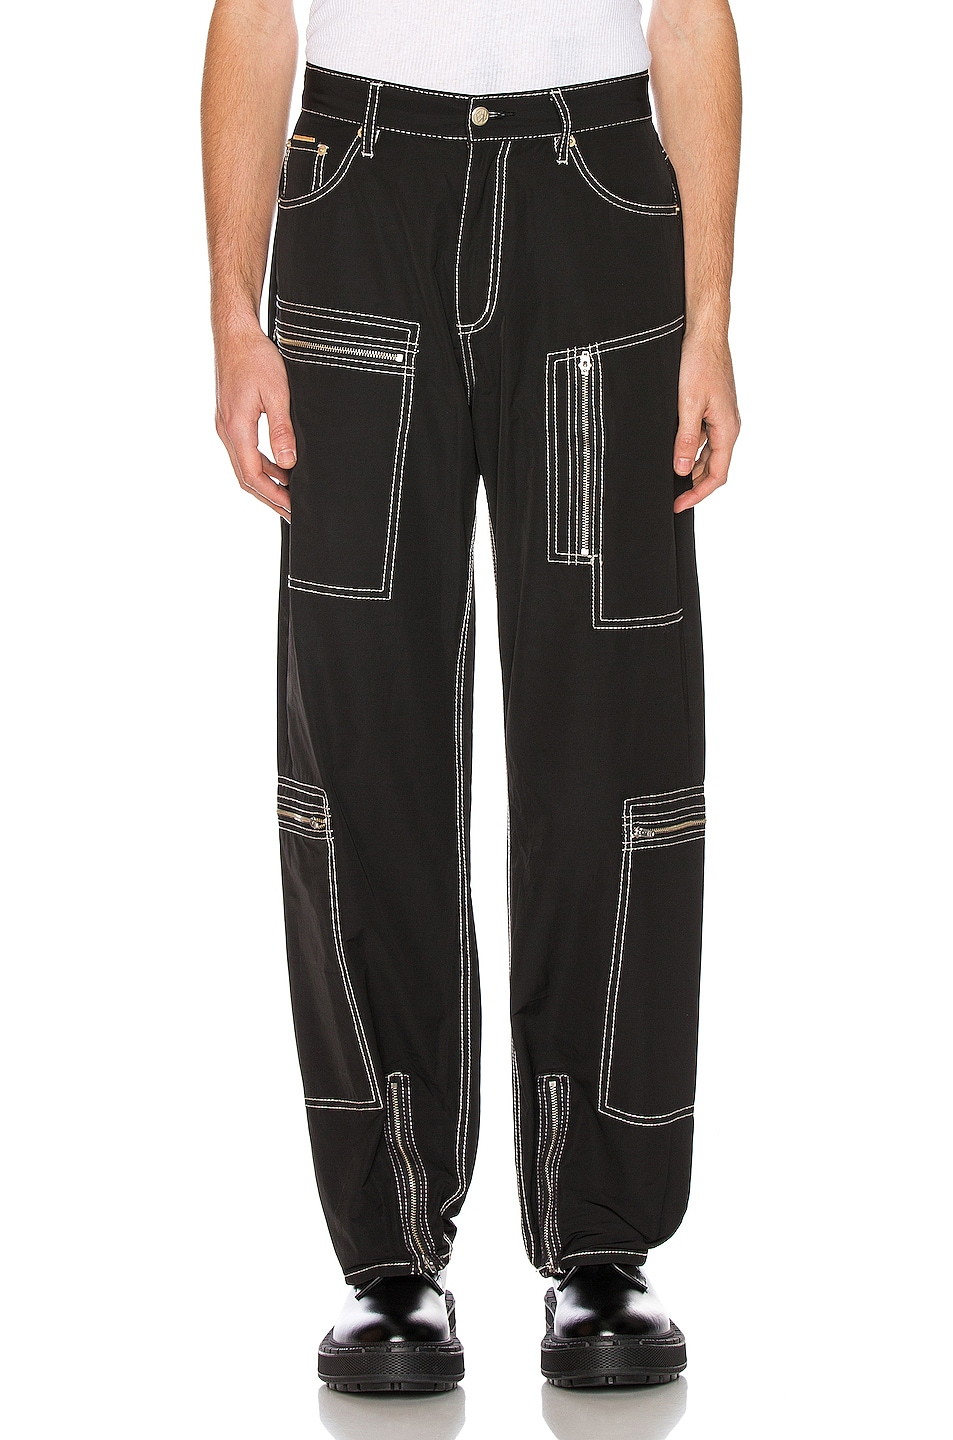 Image 1 of Eytys Benz MK Tech Pant in Black